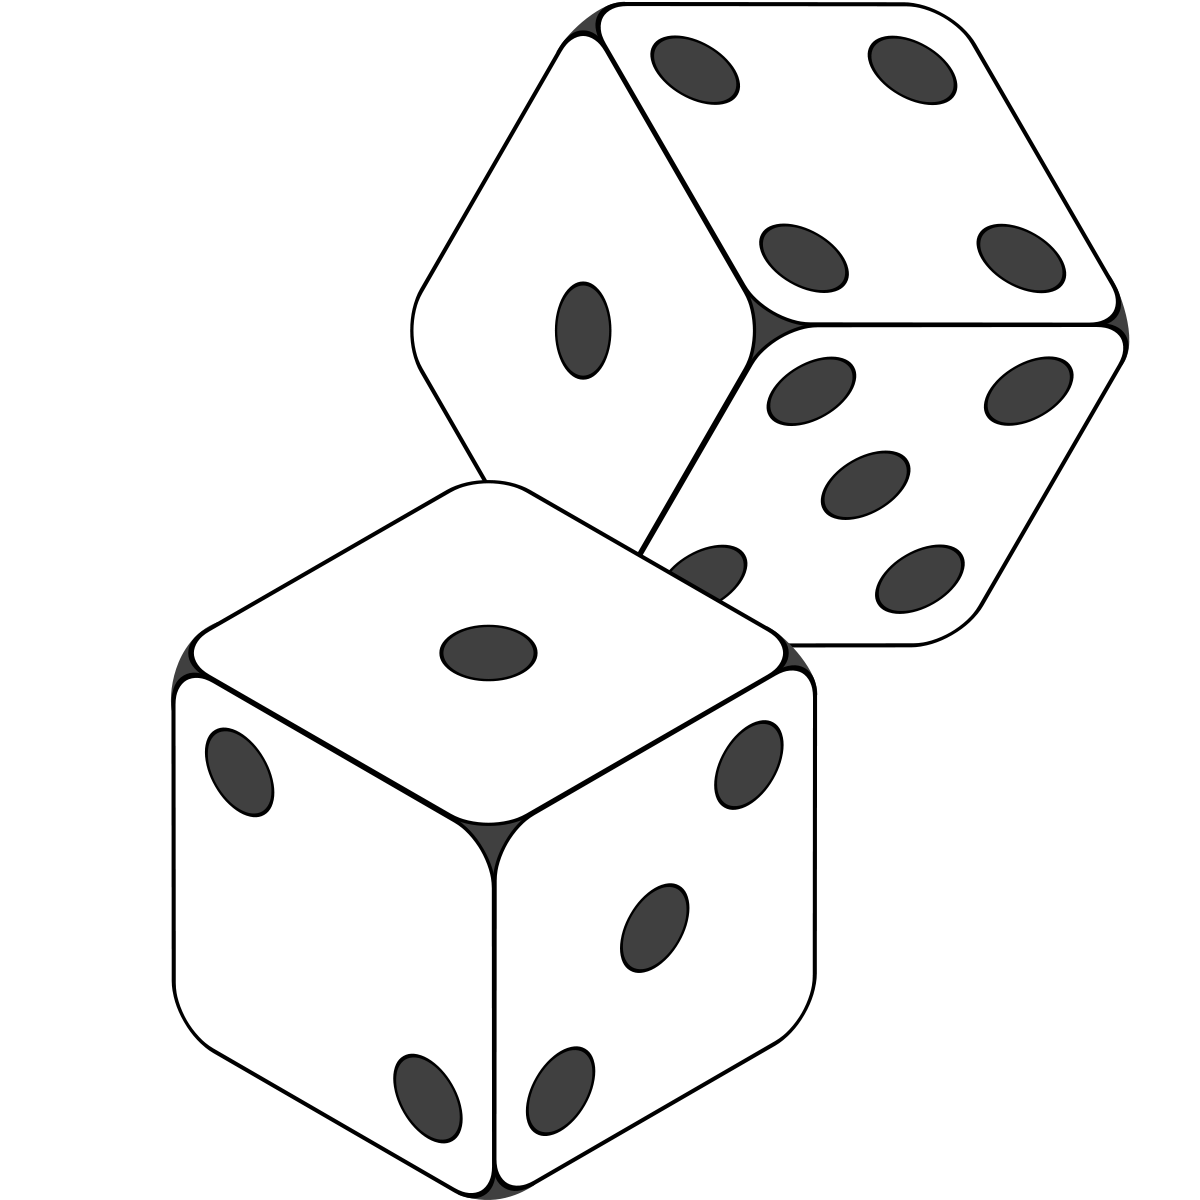 clipart black and white download Musikalisches w rfelspiel wikipedia. Card clipart dice card.